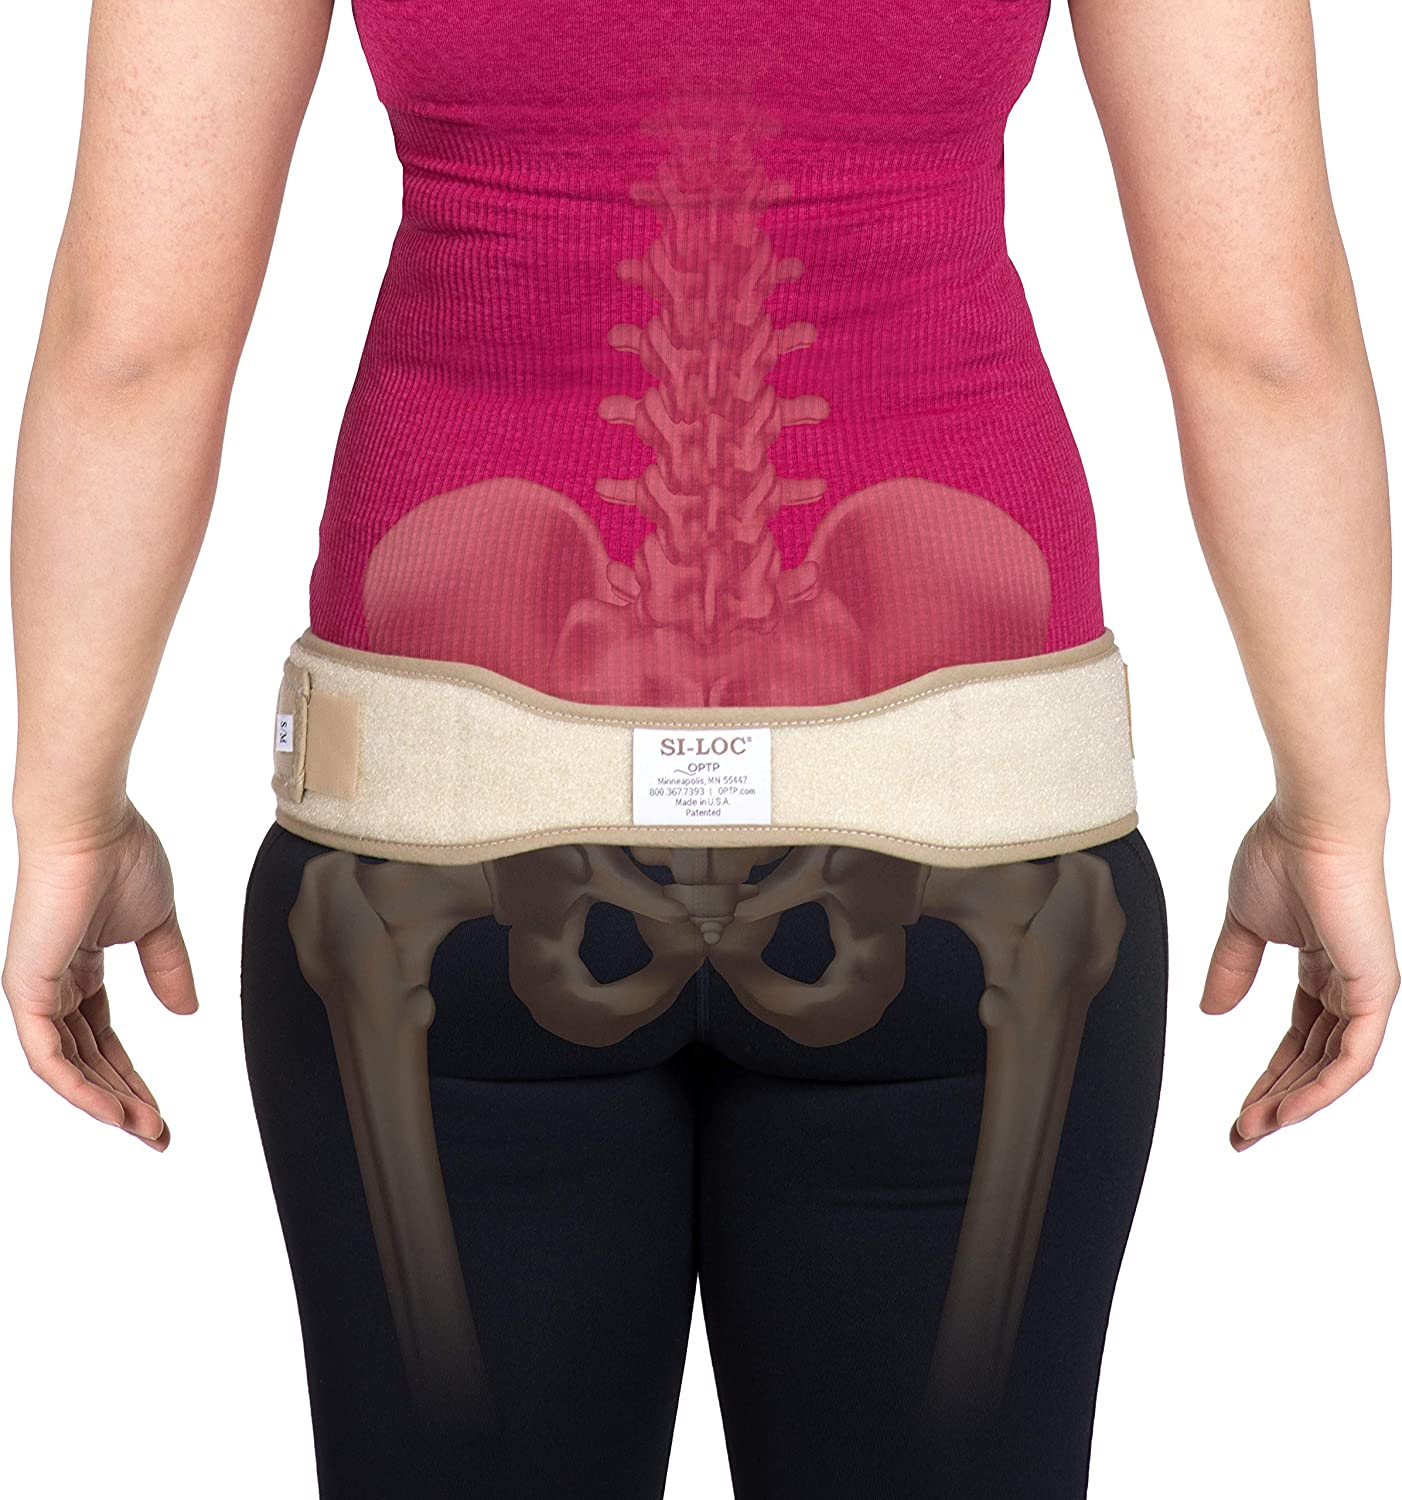 B000X9PE7M OPTP SI-LOC Sacroiliac Support Belt - Large/Extra Large (671) - Low Back and Pelvic Pain Relief 911hnb2BW50L